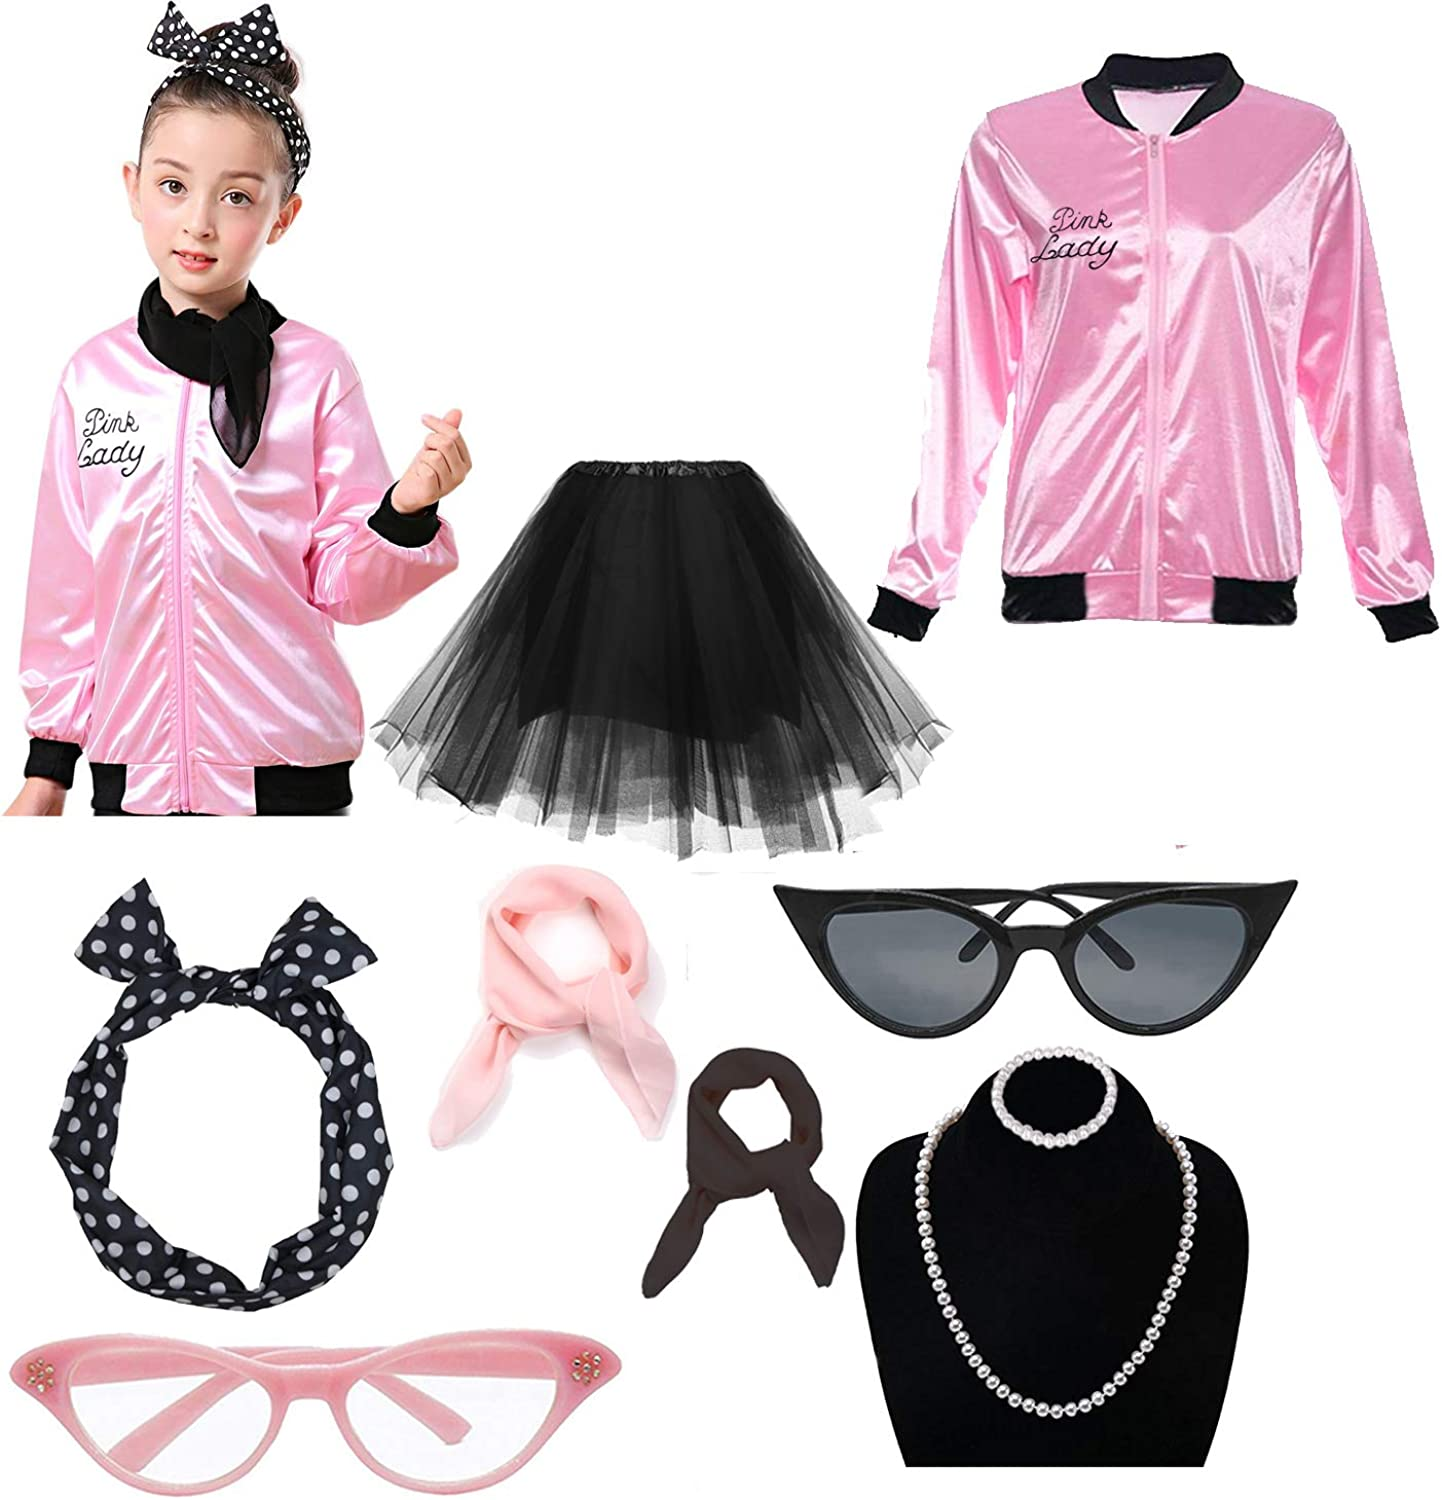 Max 56% OFF Dancing Stone Child Girls 50's 25% OFF Jacket with Headband Costume